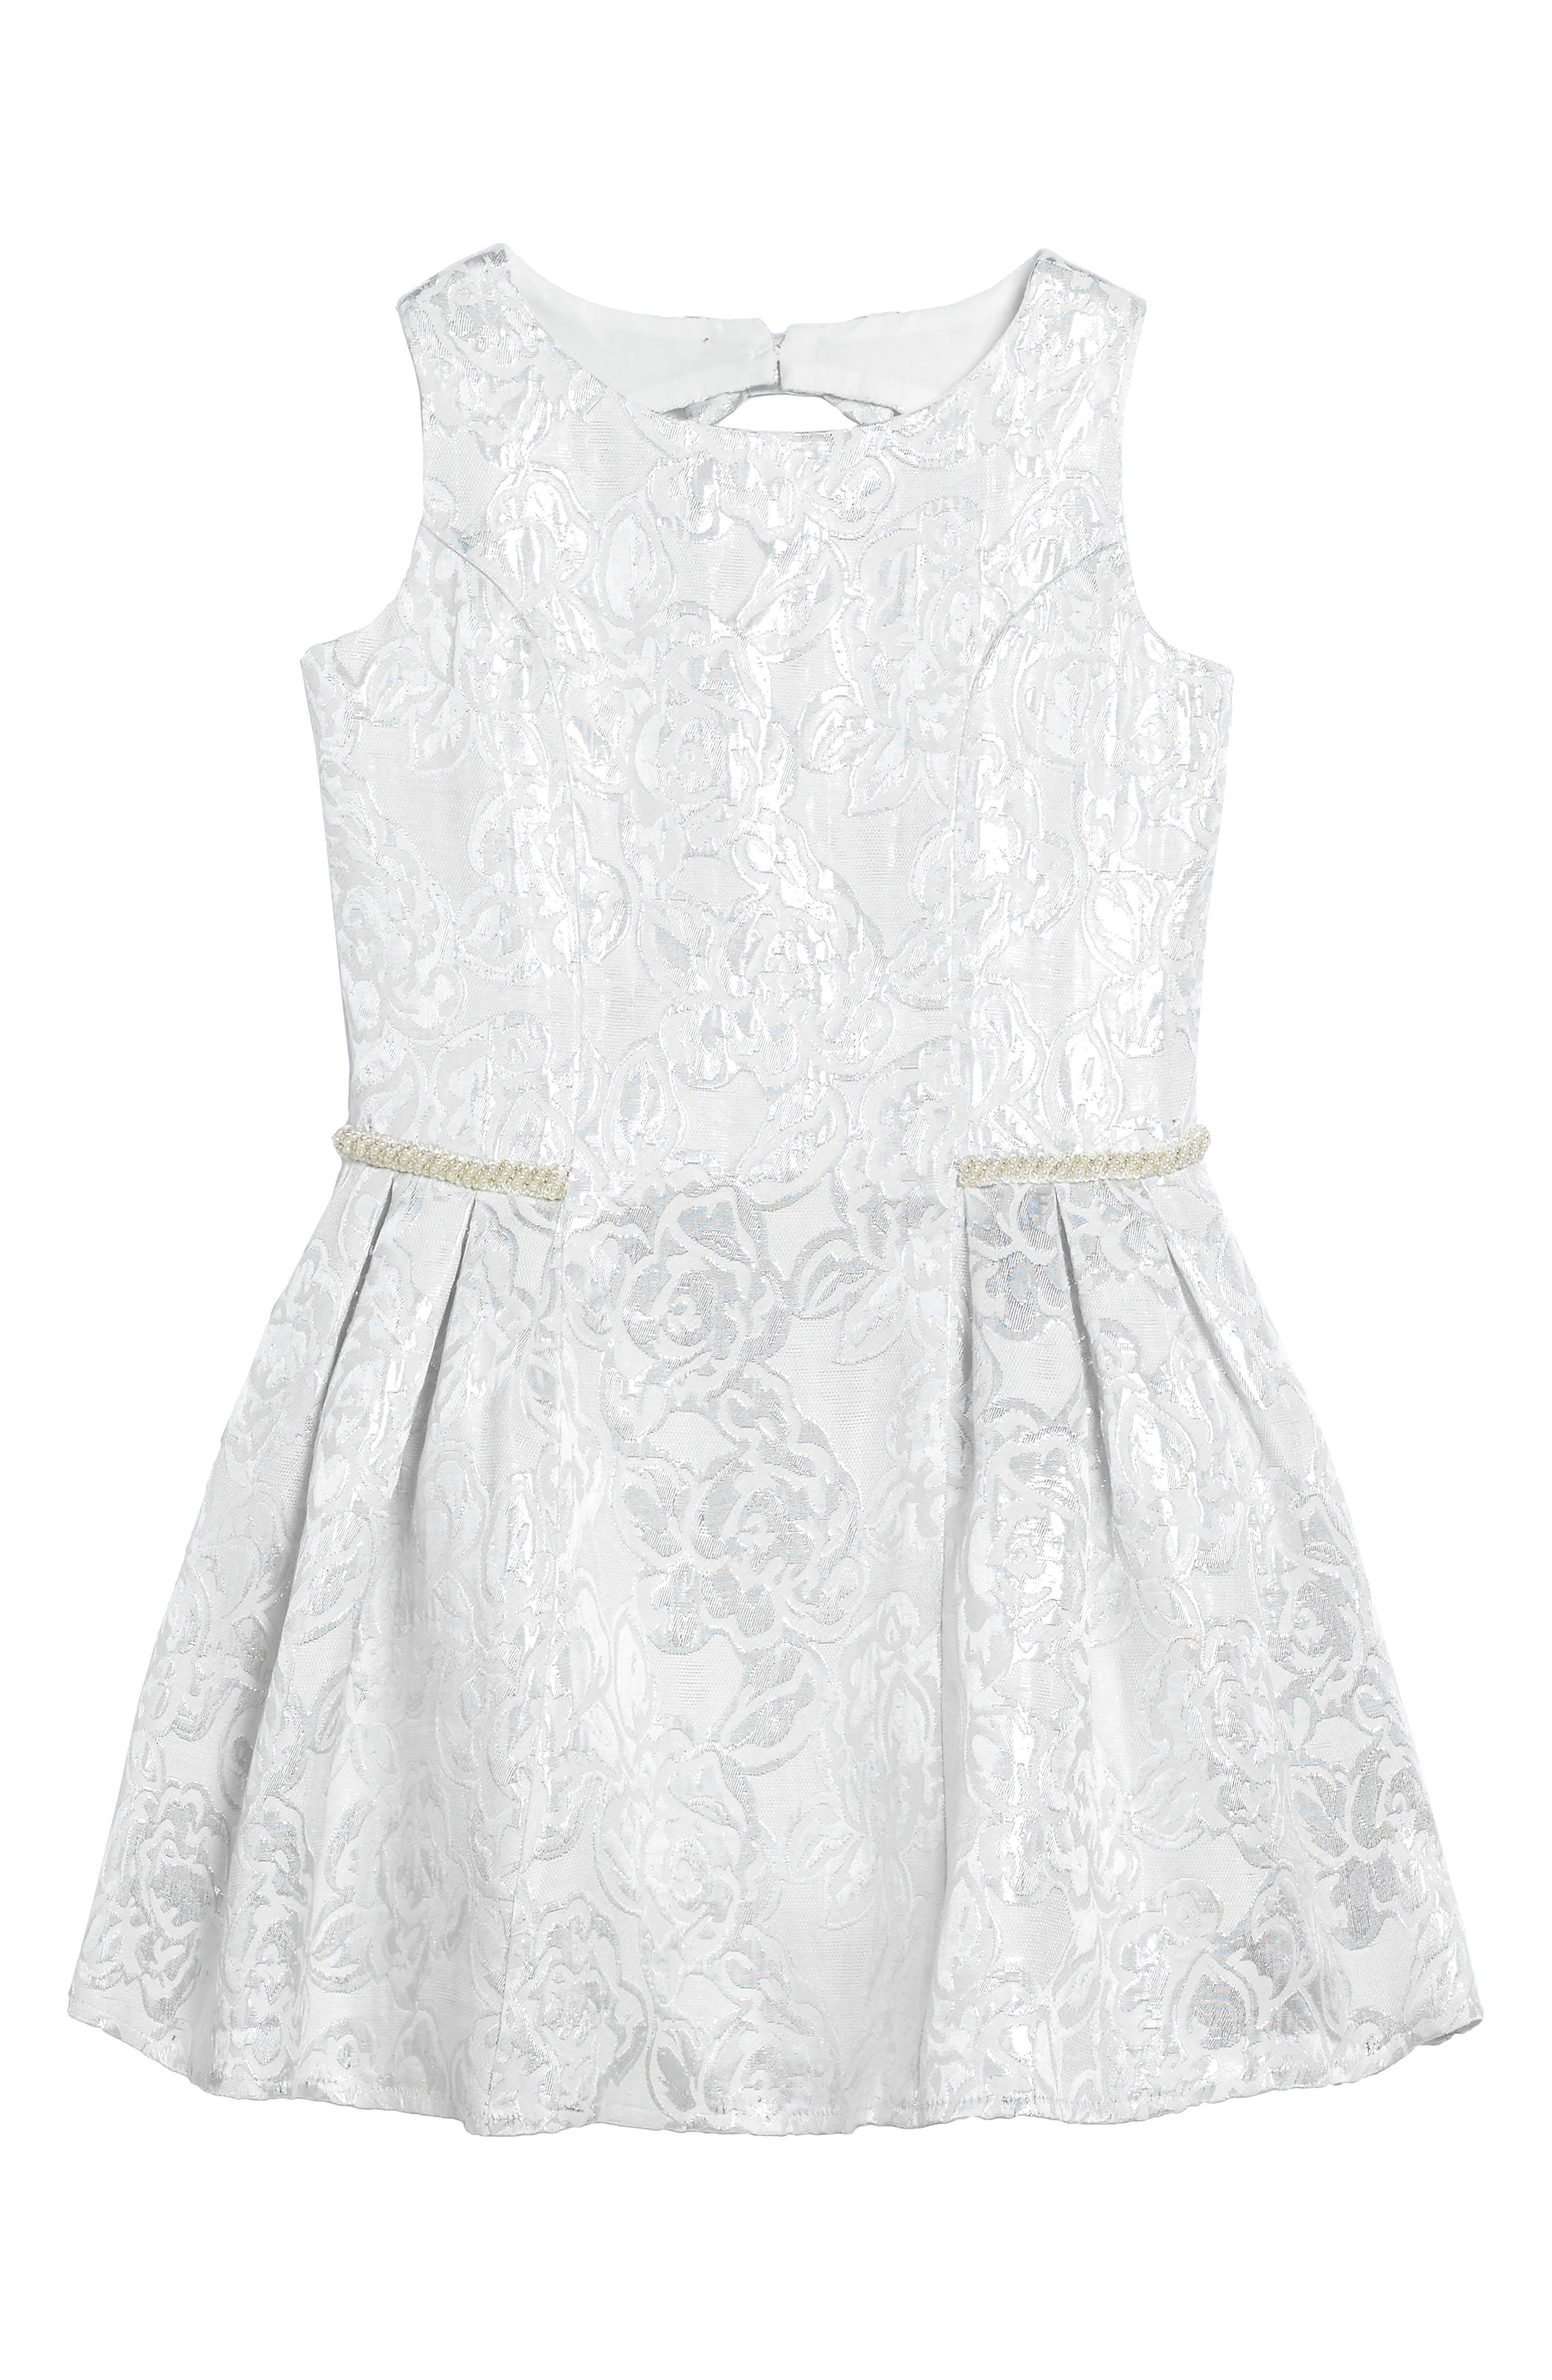 Little Angels Princess Embroidered Dress (Toddler Girls & Little Girls)